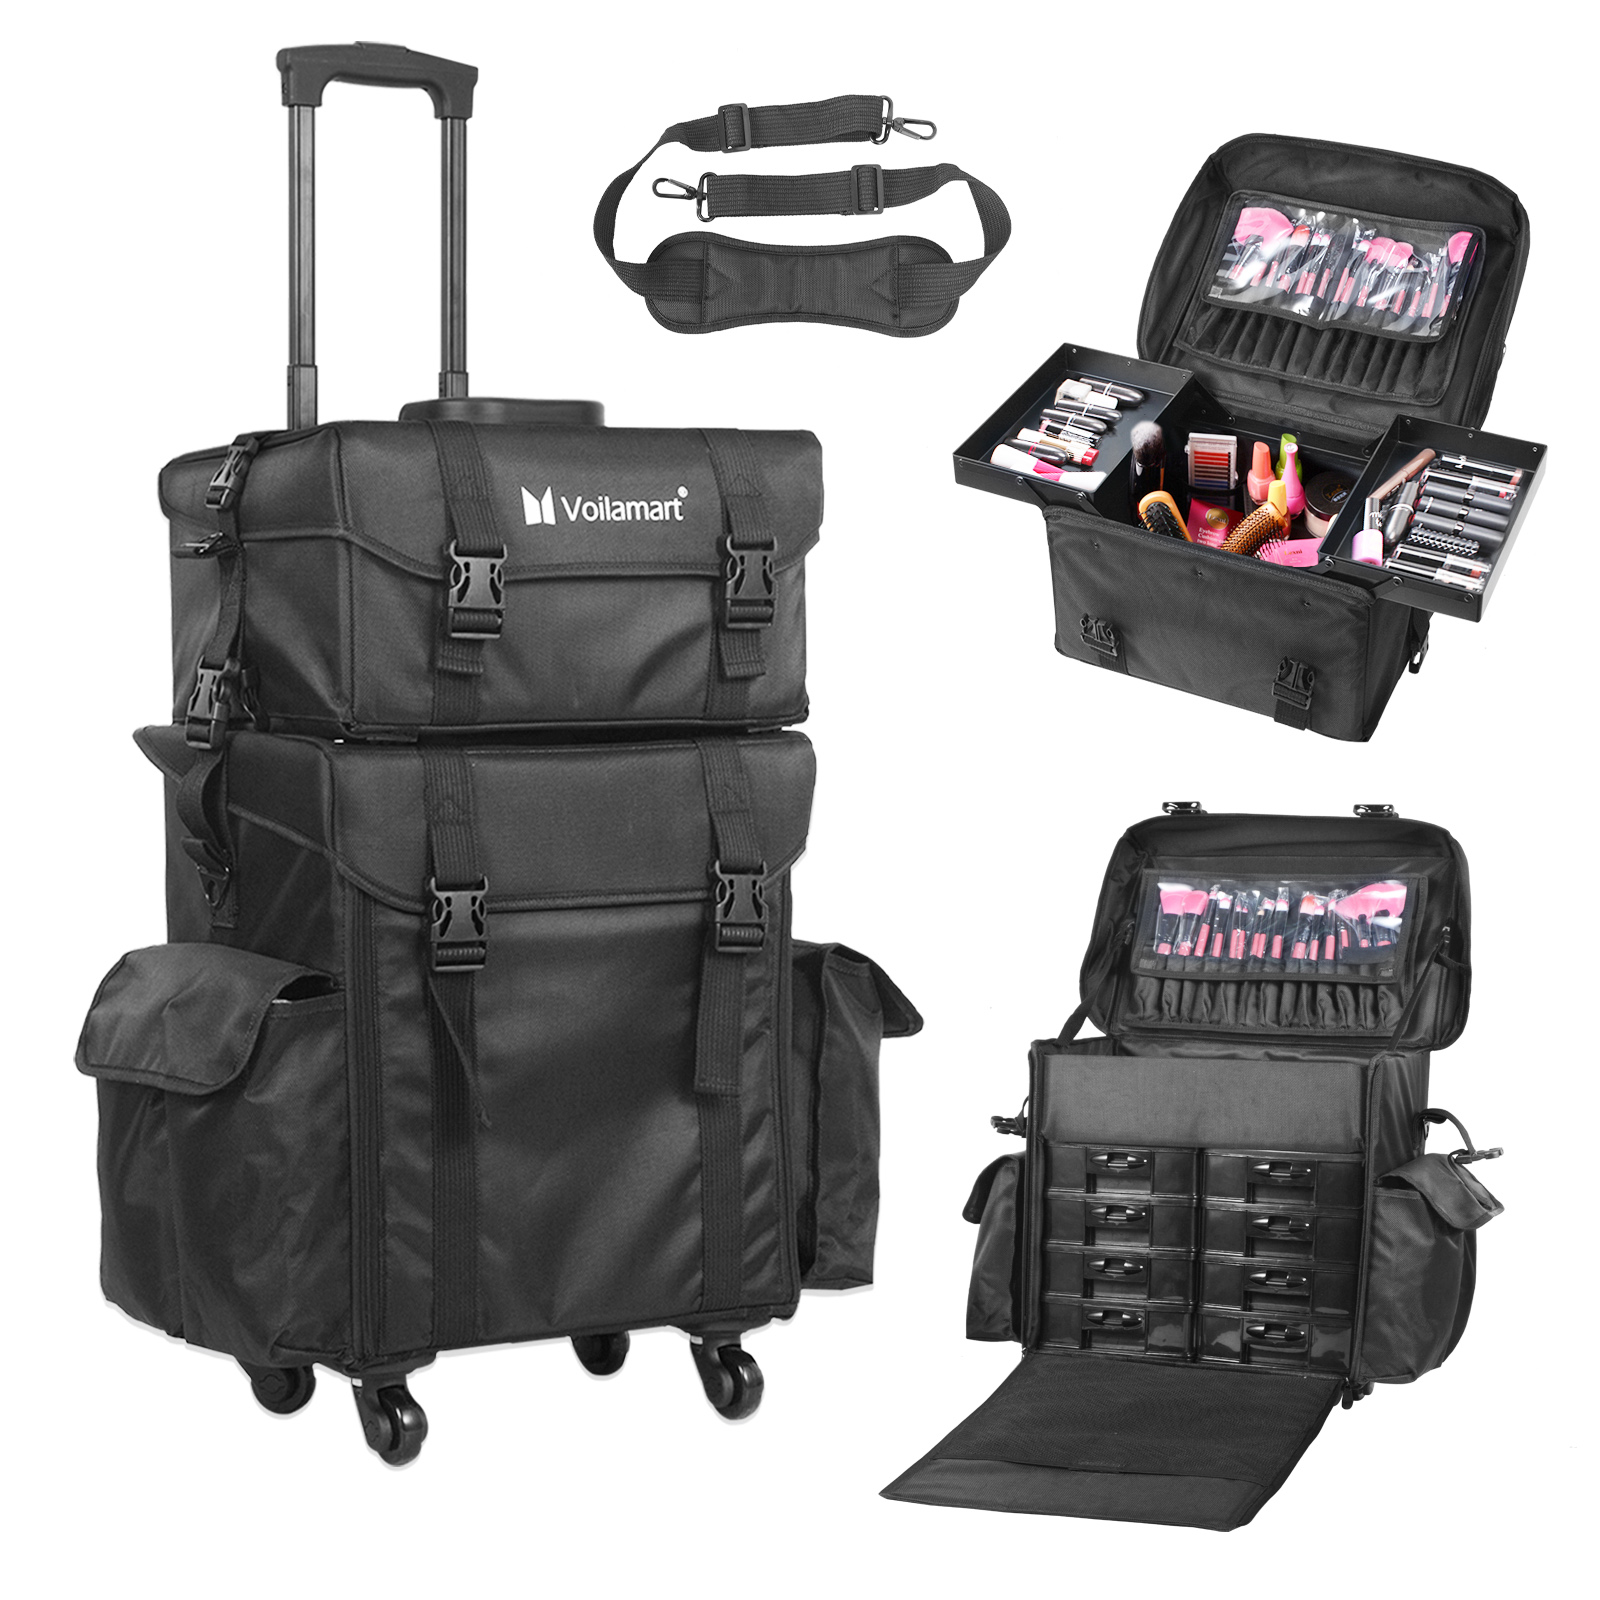 Voilamart Multifunction Artist Rolling Makeup Case Nylon Trolley Case 2 in 1 Travel Cosmetic ALL Black Bags for Professional Make Up Artist Cosmetics Storage Shoulder Strap Drawers Side Pocket